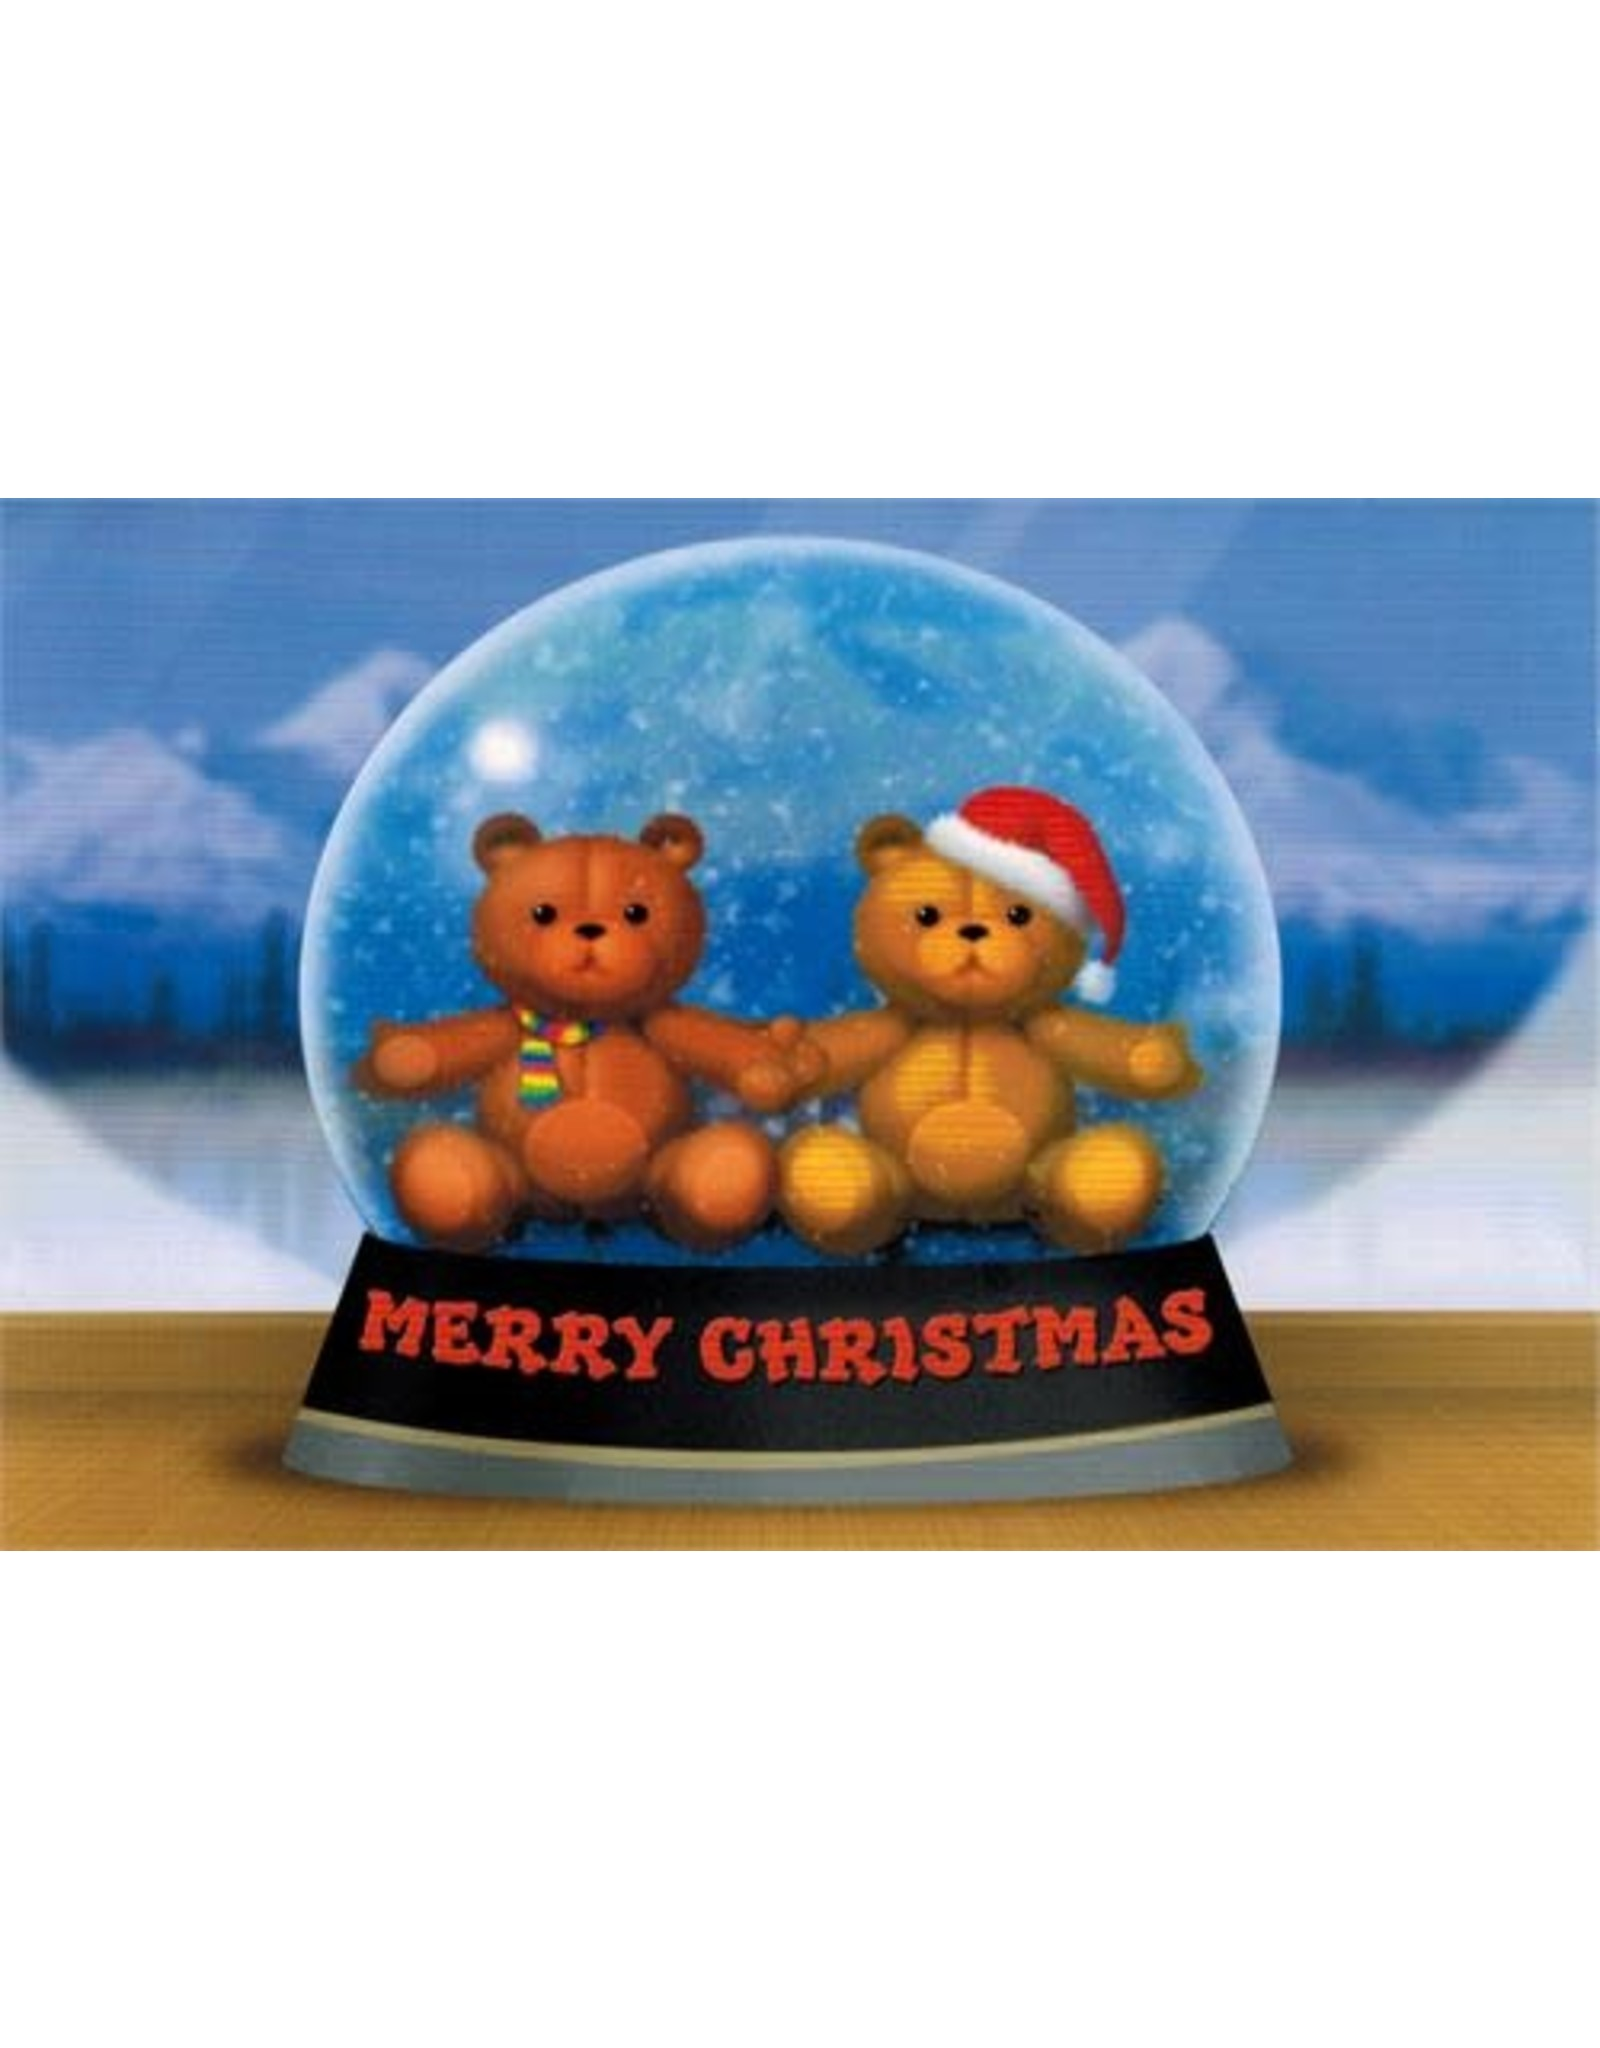 10% PRODUCTIONS X MAS CARD SNOW GLOBE W/ TEDDY BEARS